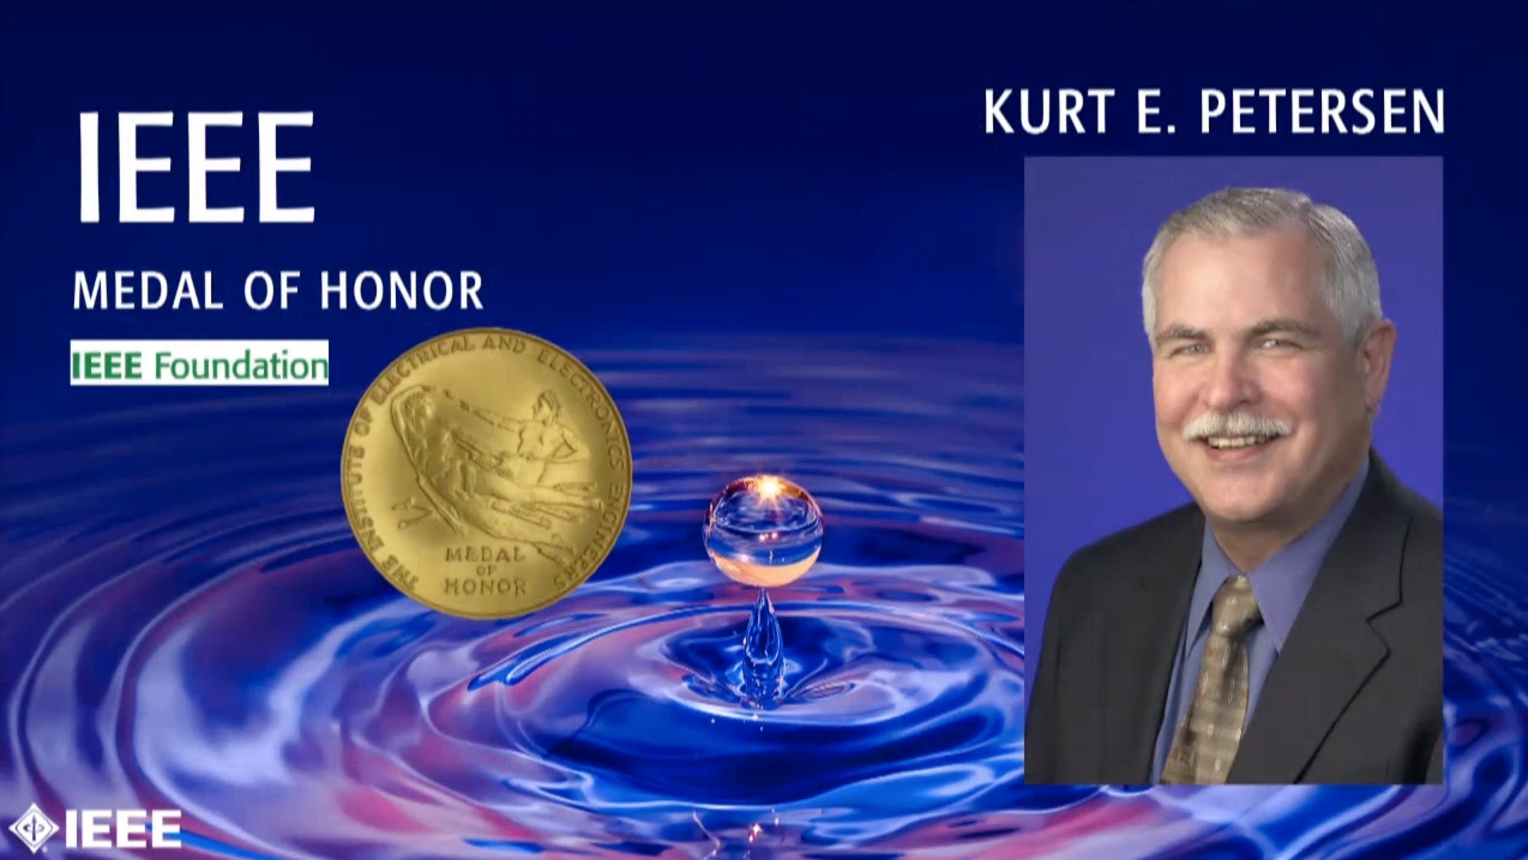 Kurt E. Petersen - IEEE Medal of Honor, 2019 IEEE Honors Ceremony